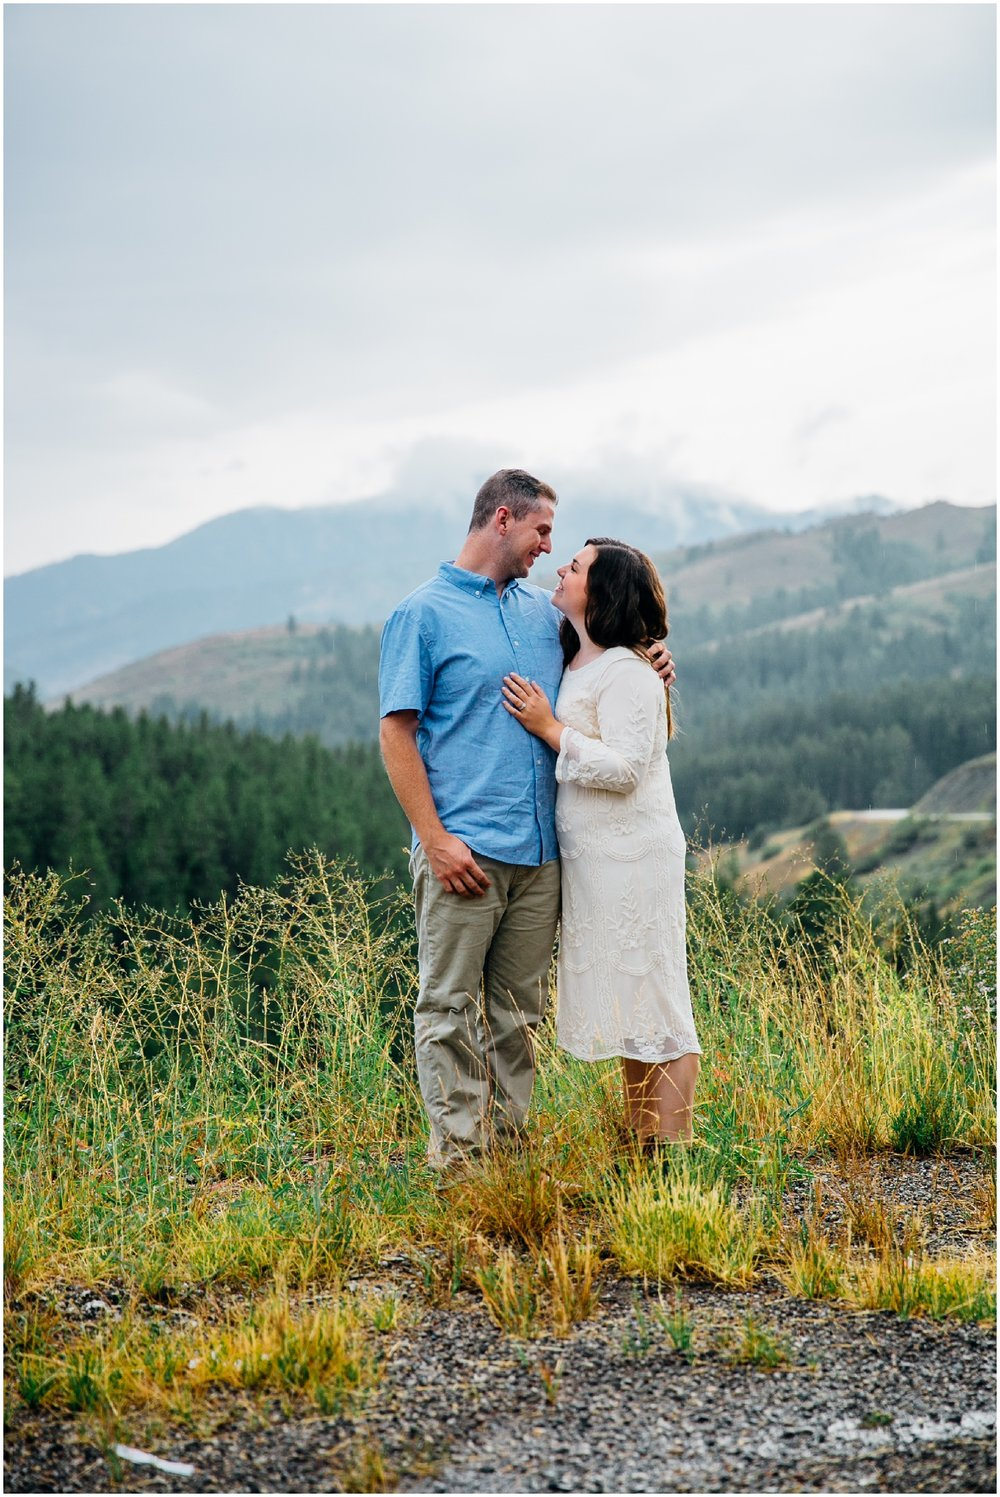 swan-valley-jackson-wyoming-engagements-idaho-colorado-wyoming-wedding-photographer_0902.jpg